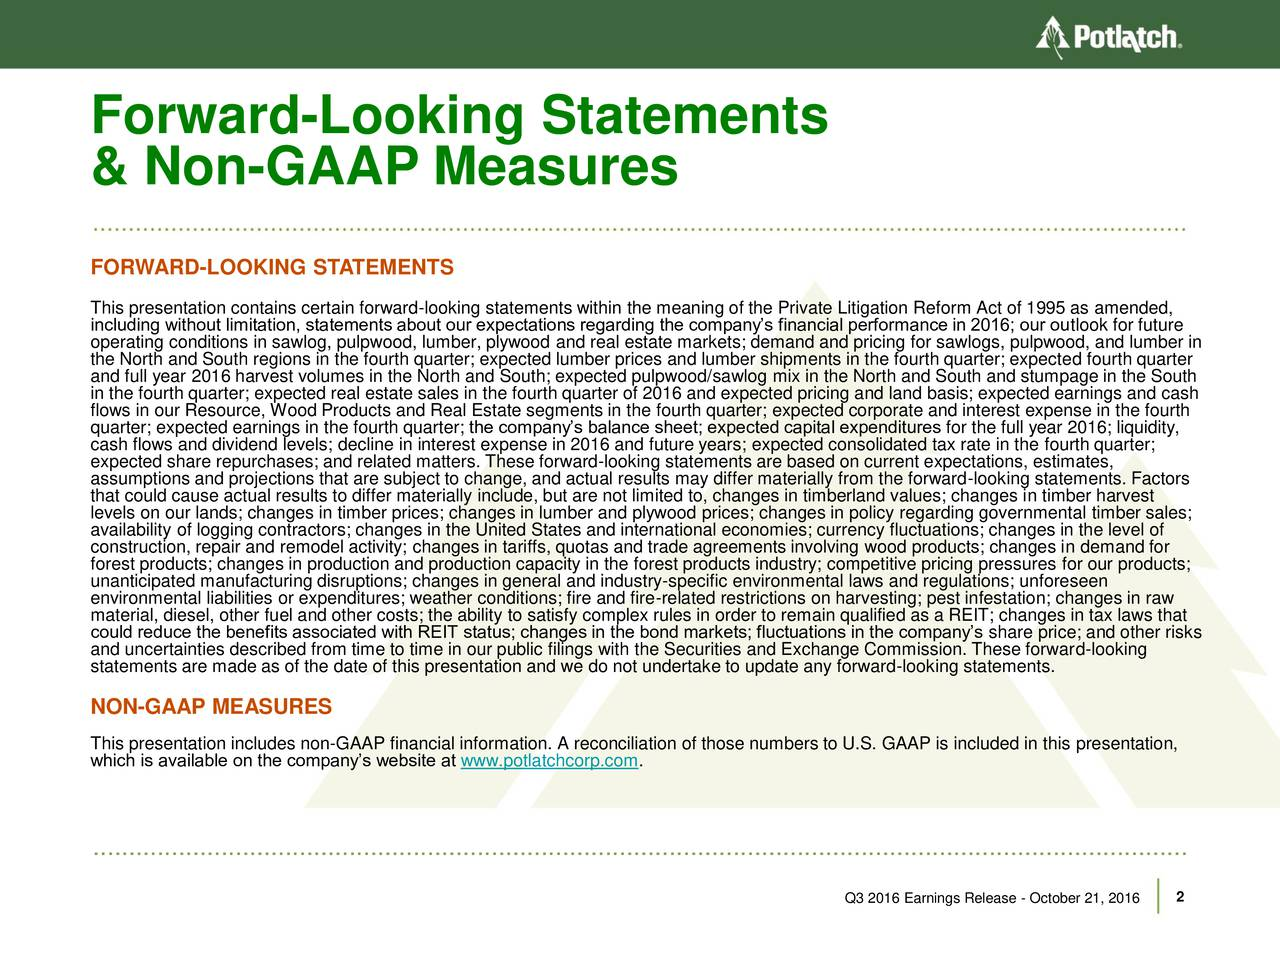 & Non-GAAP Measures FORWARD-LOOKING STATEMENTS This presentation contains certain forward-looking statements within the meaning of the Private Litigation Reform Act of 1995 as amended, operating conditions in sawlog, pulpwood, lumber, plywood and real estate markets; demand and pricing for sawlogs, pulpwood, and lumber inure the North and South regions in the fourth quarter; expected lumber prices and lumber shipments in the fourth quarter; expected fourth quarter and full year 2016 harvest volumes in the North and South; expected pulpwood/sawlog mix in the North and South and stumpage in the South in the fourth quarter; expected real estate sales in the fourth quarter of 2016 and expected pricing and land basis; expected earnings and cash flows in our Resource, Wood Products and Real Estate segments in the fourth quarter; expected corporate and interest expense in the fourth quarter; expected earnings in the fourth quarter; the companys balance sheet; expected capital expenditures for the full year 2016; liquidity, cash flows and dividend levels; decline in interest expense in 2016 and future years; expected consolidated tax rate in the fourth quarter; expected share repurchases; and related matters. These forward-looking statements are based on current expectations, estimates, assumptions and projections that are subject to change, and actual results may differ materially from the forward-looking statements. Factors that could cause actual results to differ materially include, but are not limited to, changes in timberland values; changes in timber harvest availability of logging contractors; changes in the United States and international economies; currency fluctuations; changes in the level of construction, repair and remodel activity; changes in tariffs, quotas and trade agreements involving wood products; changes in demand for forest products; changes in production and production capacity in the forest products industry; competitive pricing pressures for our products; unanticipated manufacturing disruptions; changes in general and industry-specific environmental laws and regulations; unforeseen environmental liabilities or expenditures; weather conditions; fire and fire-related restrictions on harvesting; pest infestation; changes in raw material, diesel, other fuel and other costs; the ability to satisfy complex rules in order to remain qualified as a REIT; changes in tax laws that could reduce the benefits associated with REIT status; changes in the bond markets; fluctuations in the companys share price; and other risks and uncertainties described from time to time in our public filings with the Securities and Exchange Commission. These forward-looking statements are made as of the date of this presentation and we do not undertake to update any forward-looking statements. NON-GAAP MEASURES This presentation includes non-GAAP financial information. A reconciliation of those numbers to U.S. GAAP is included in this presentation, which is available on the companys website at www.potlatchcorp.com. Q3 2016 Earnings Release - October 21, 2016